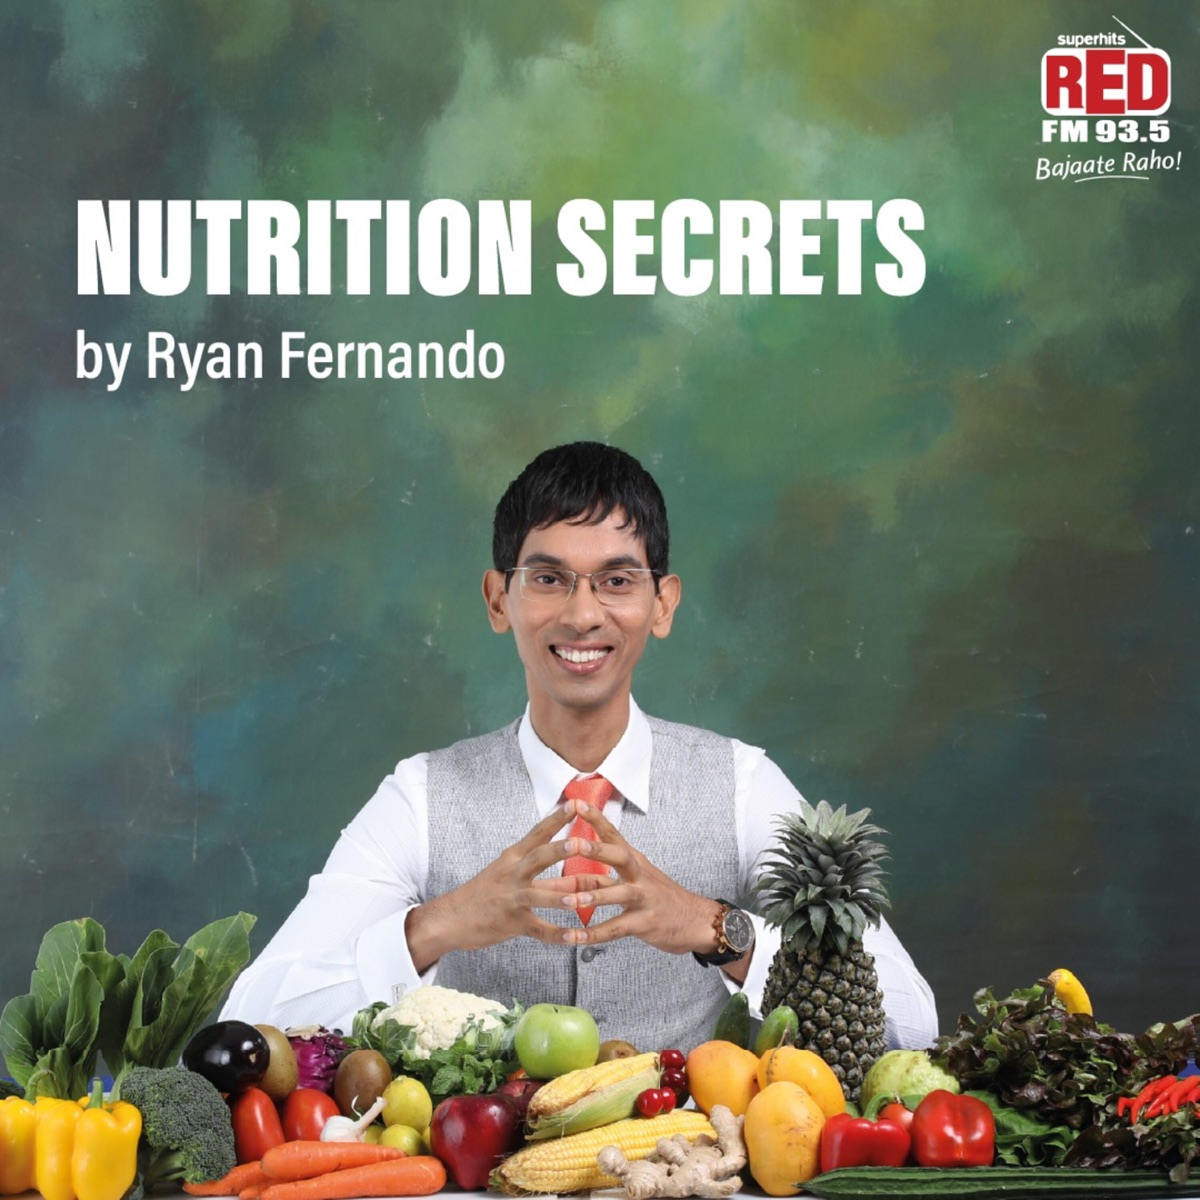 Nutrition Secrets by Ryan Fernando Podcast